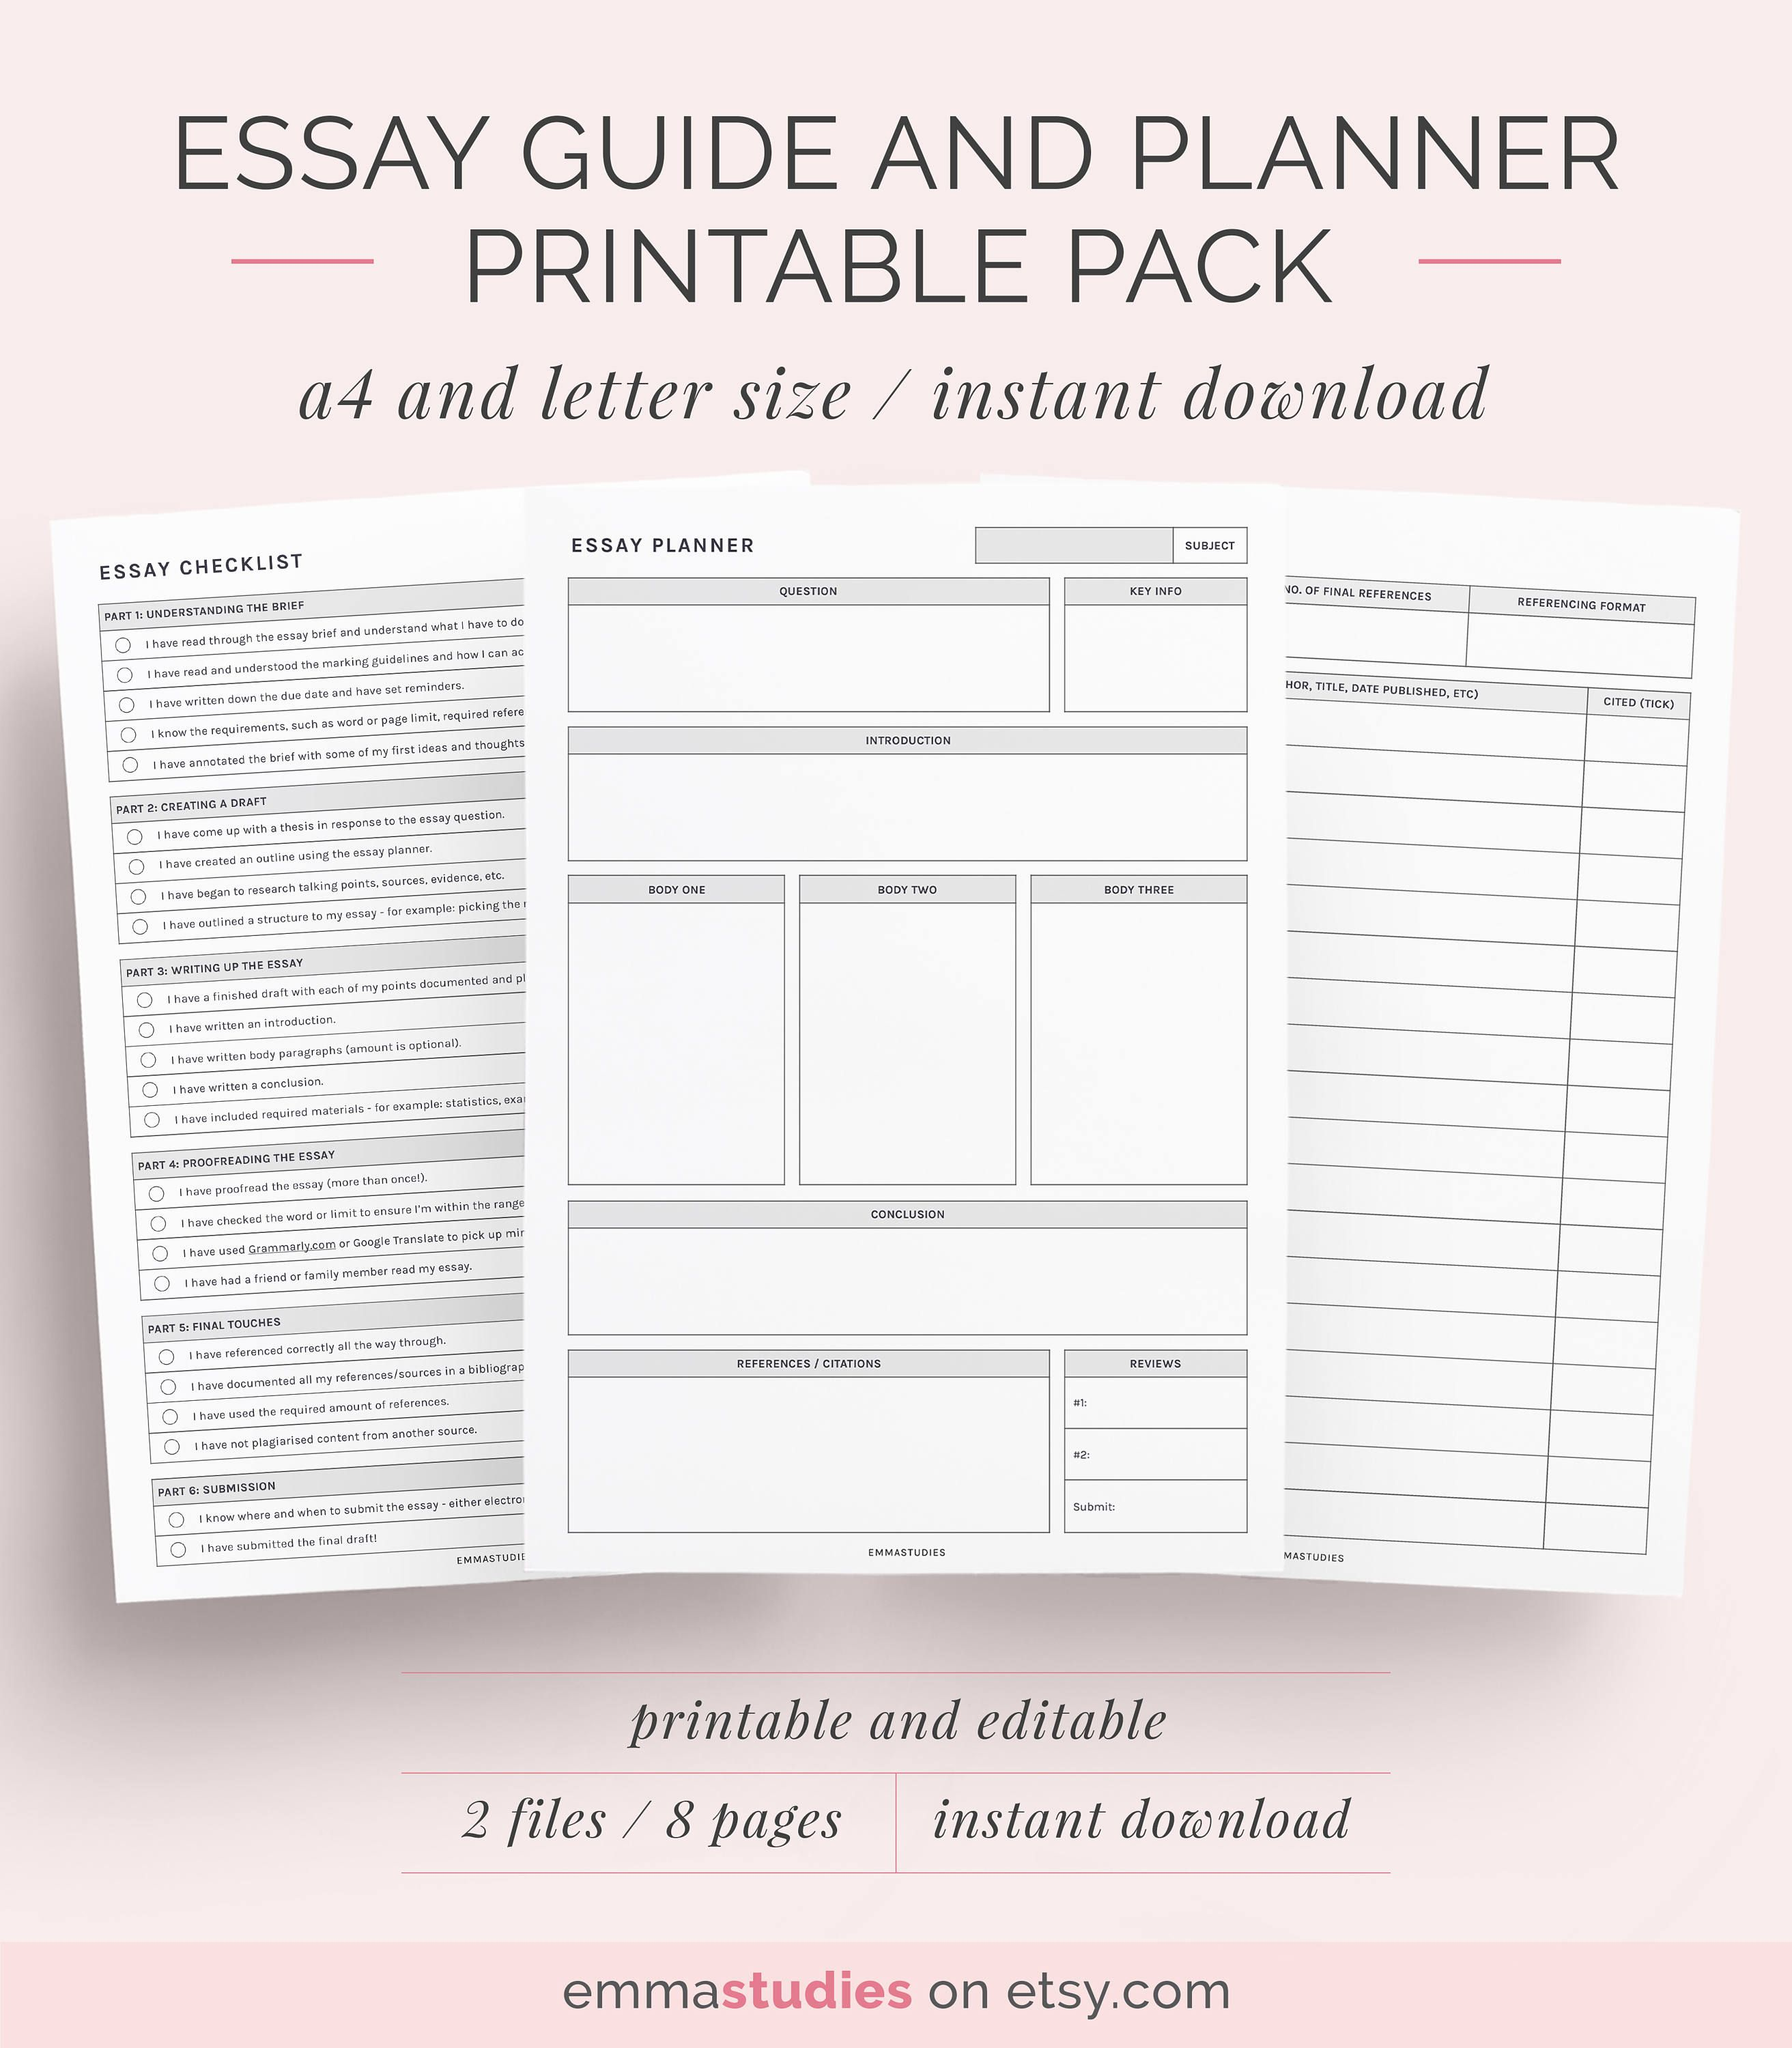 003 Essay Planner Example Amazing Night Before Pdf Sheet Plans Examples Full